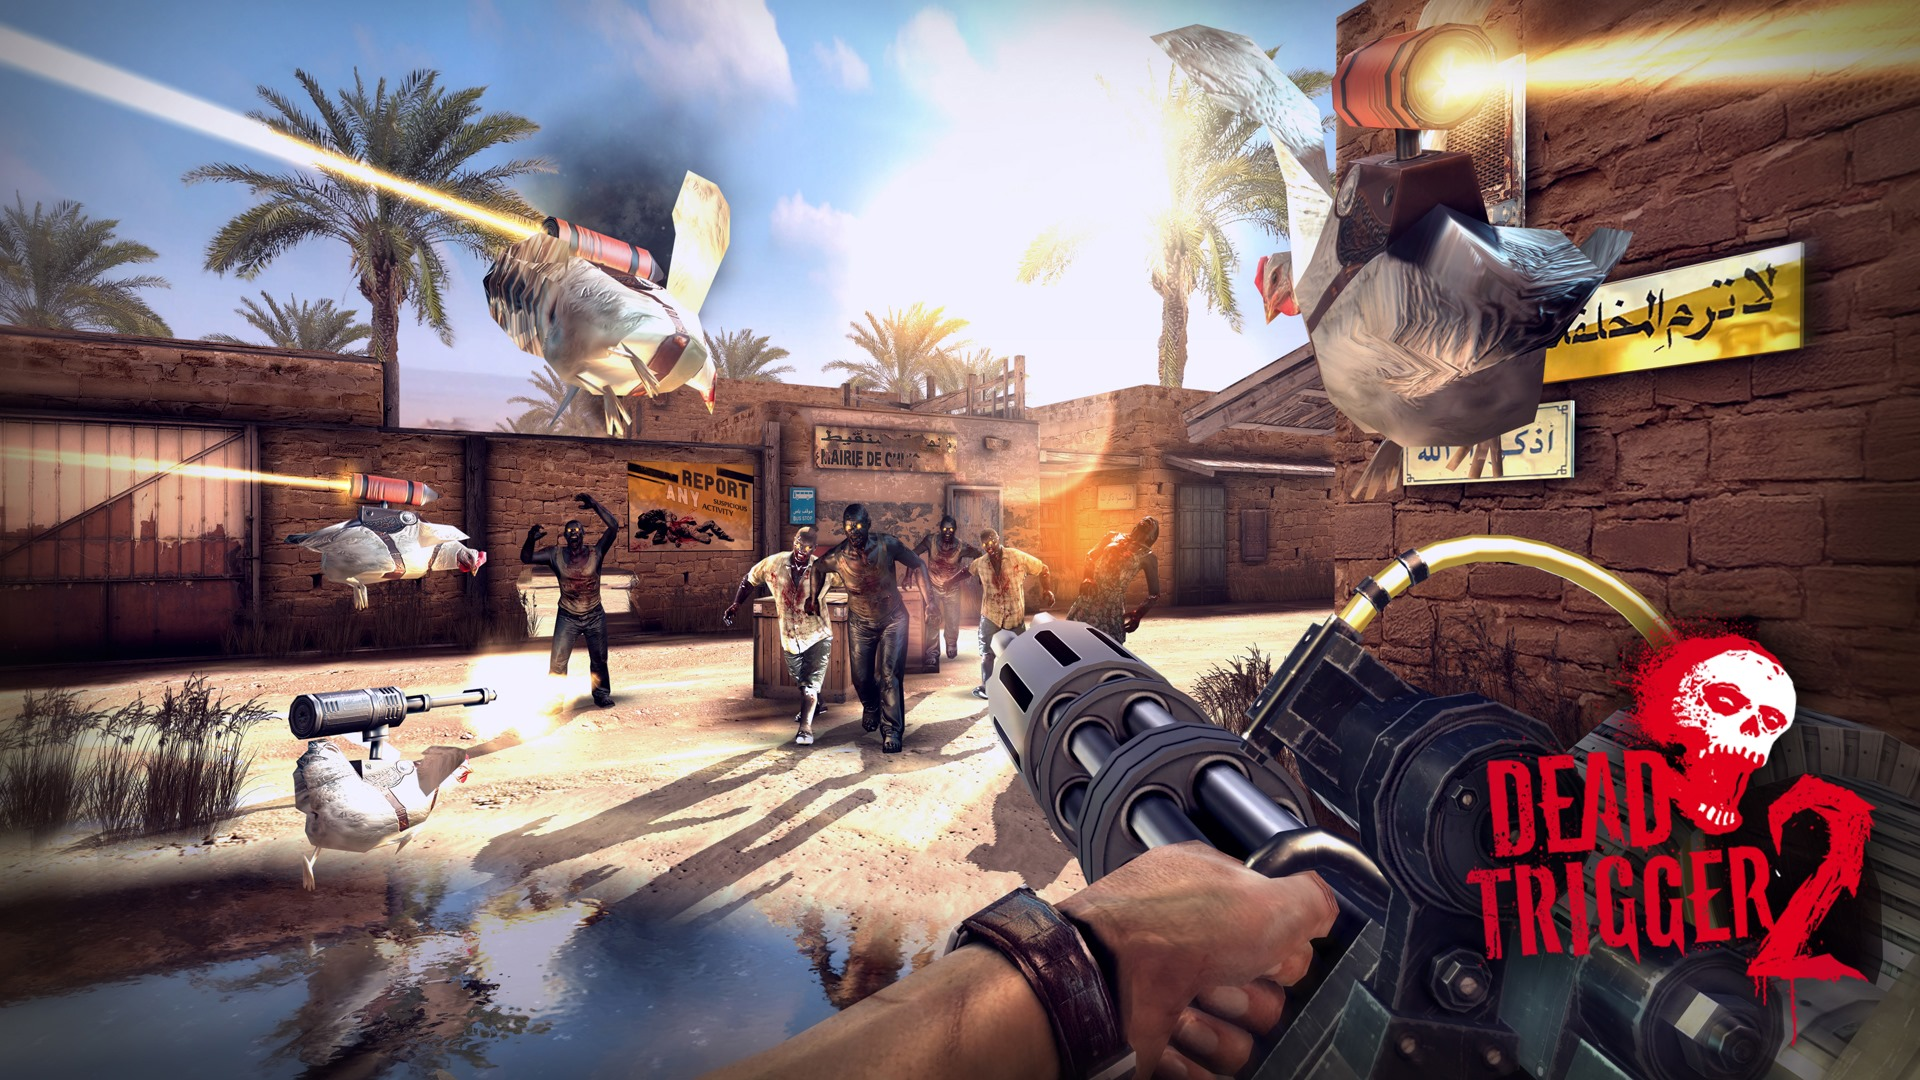 Dead Trigger 2 Drops October 23 New Trailer To Get You In The